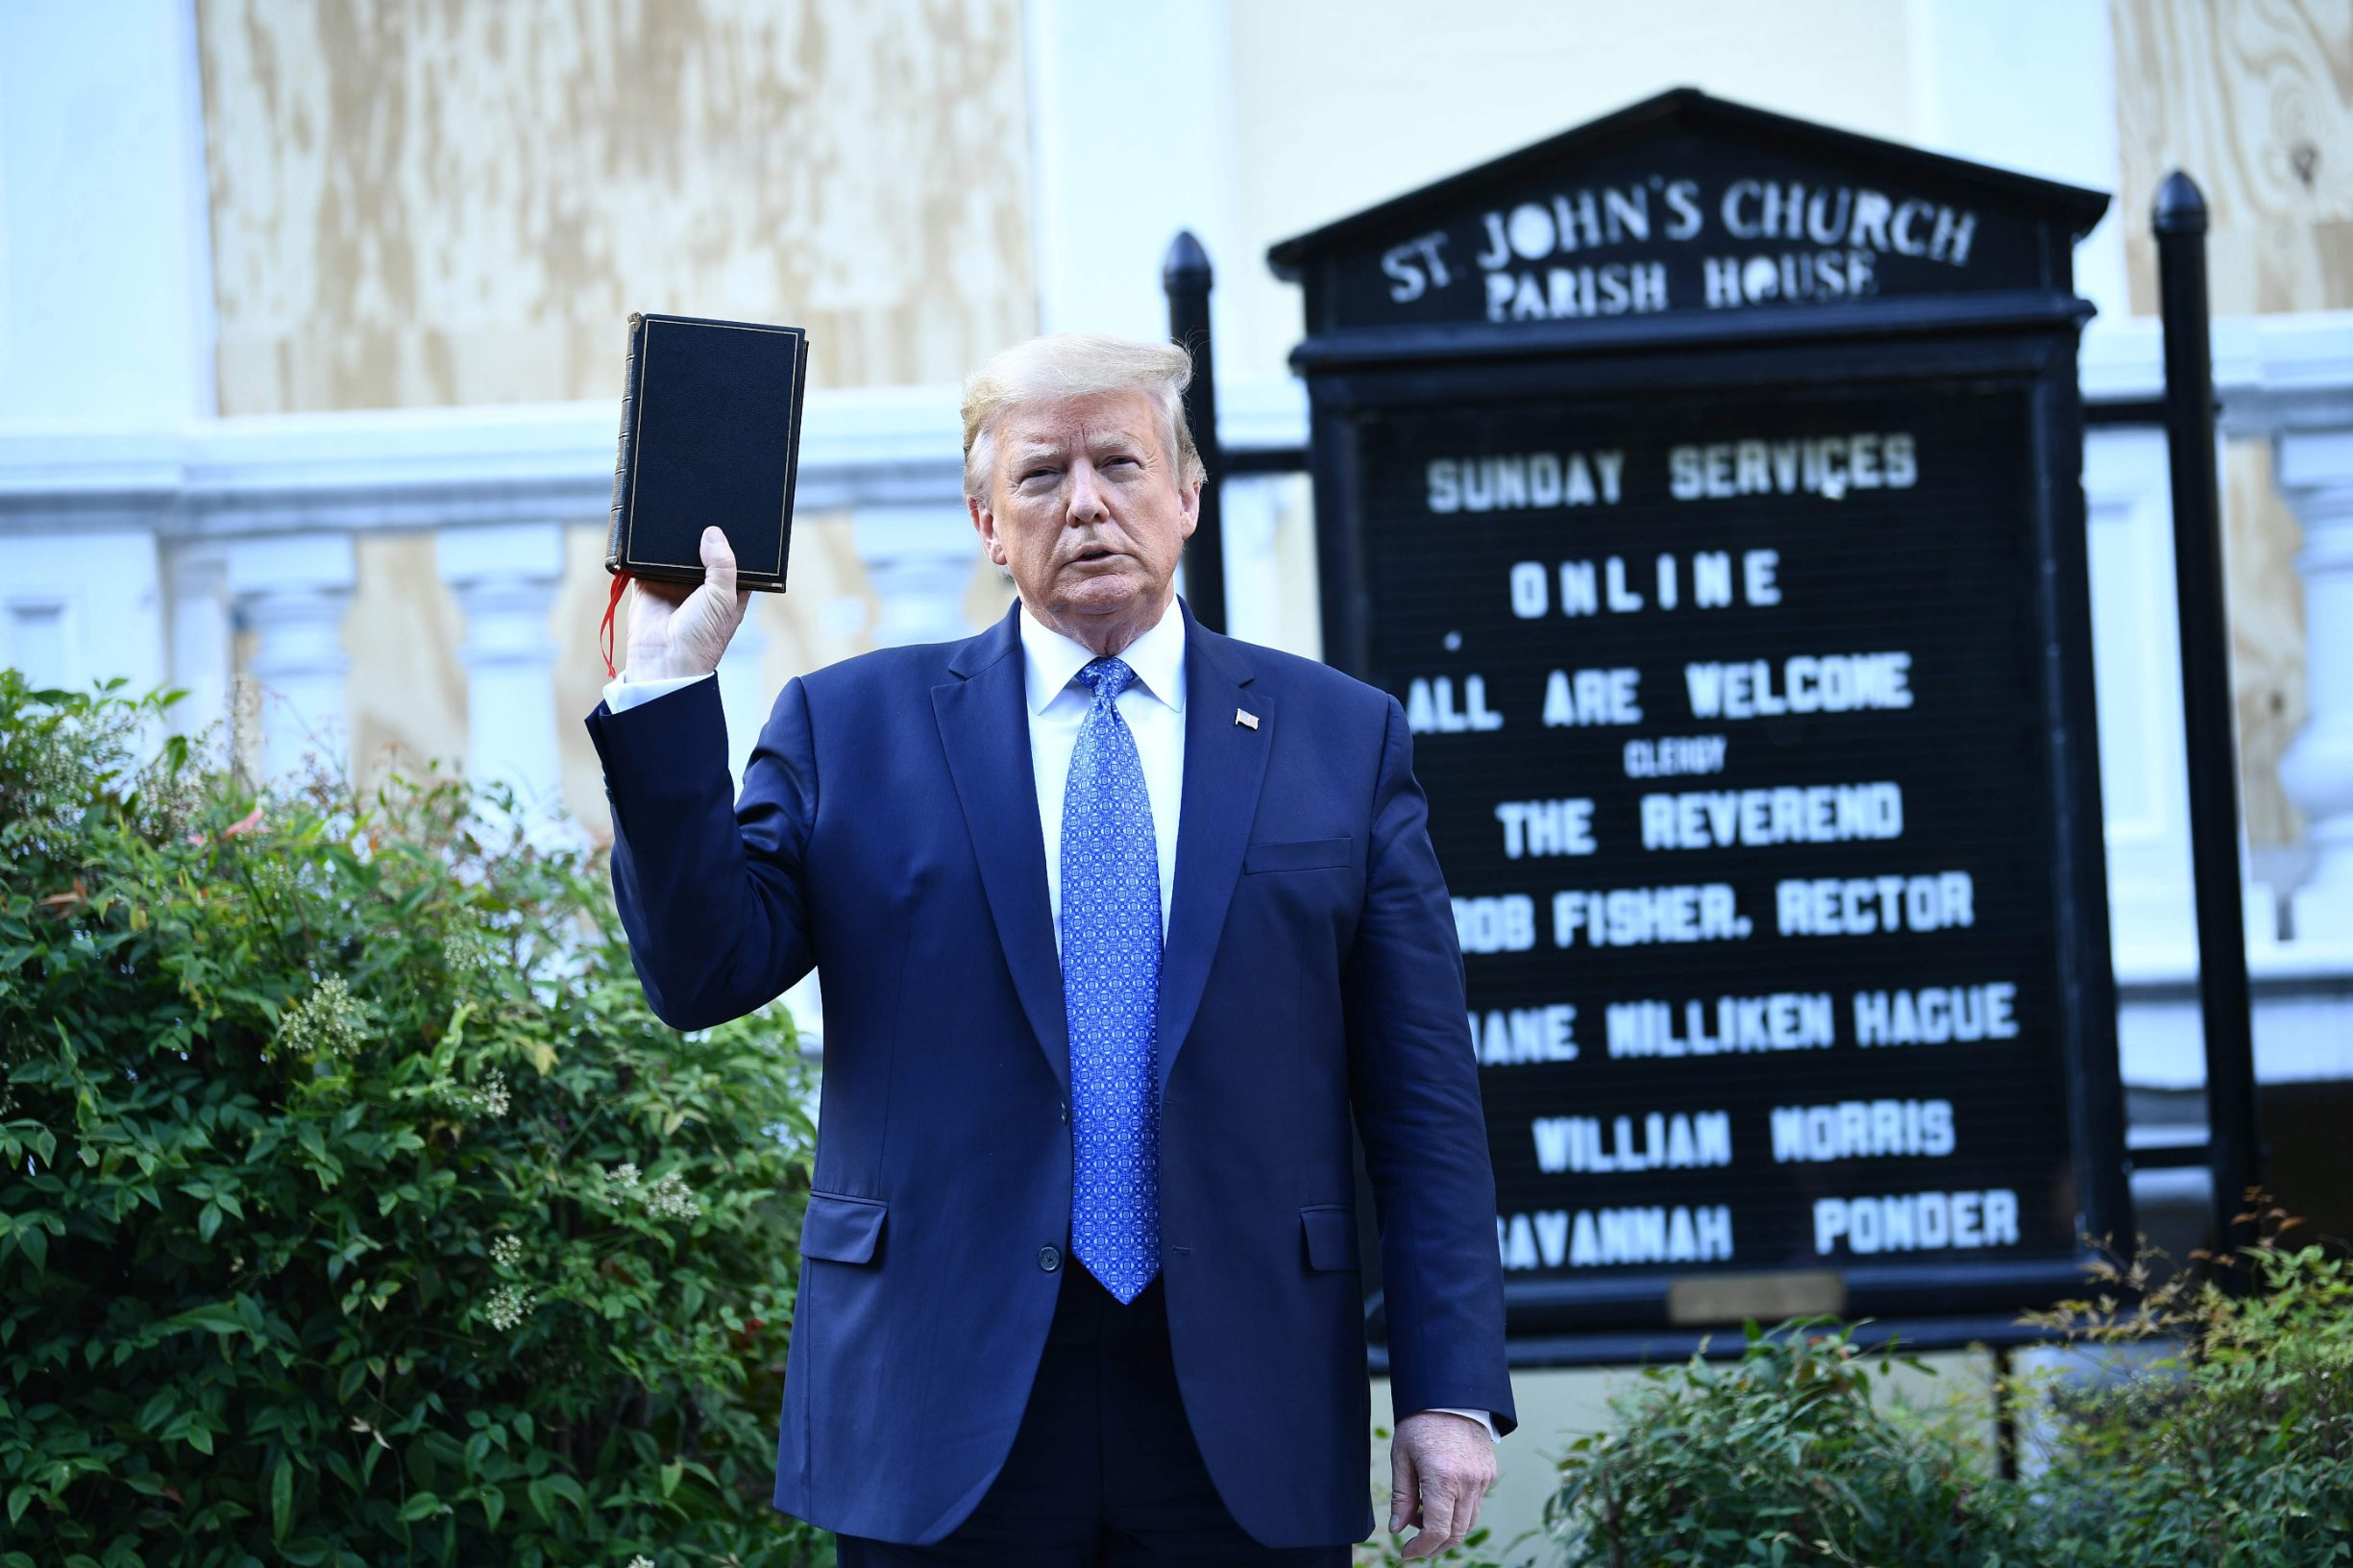 US President Donald Trump holds up a bible in front of St John's Episcopal church after walking across Lafayette Park from the White House in Washington, DC on June 1, 2020. - US President Donald Trump was due to make a televised address to the nation on Monday after days of anti-racism protests against police brutality that have erupted into violence. The White House announced that the president would make remarks imminently after he has been criticized for not publicly addressing in the crisis in recent days. (Photo by Brendan Smialowski / AFP) / ALTERNATE CROP